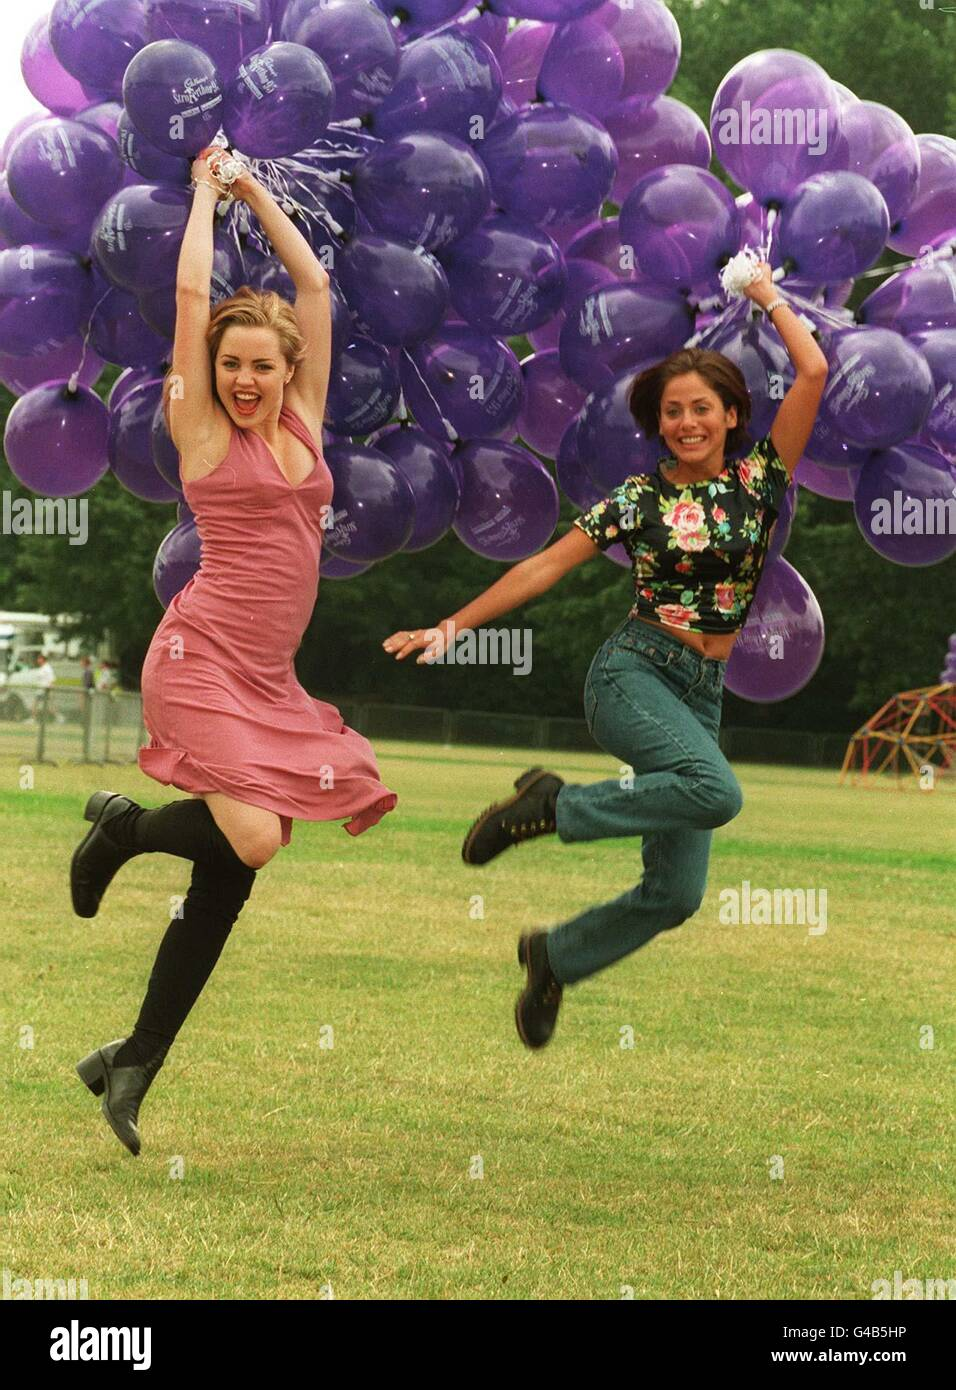 PA NEWS PHOTO 16/7/95  ACTRESS MELISSA GEORGE AND SINGER AND ACTRESS NATALIE IMBRUGLIA LAUNCHING THE 1995 CADBURY'S - Stock Image